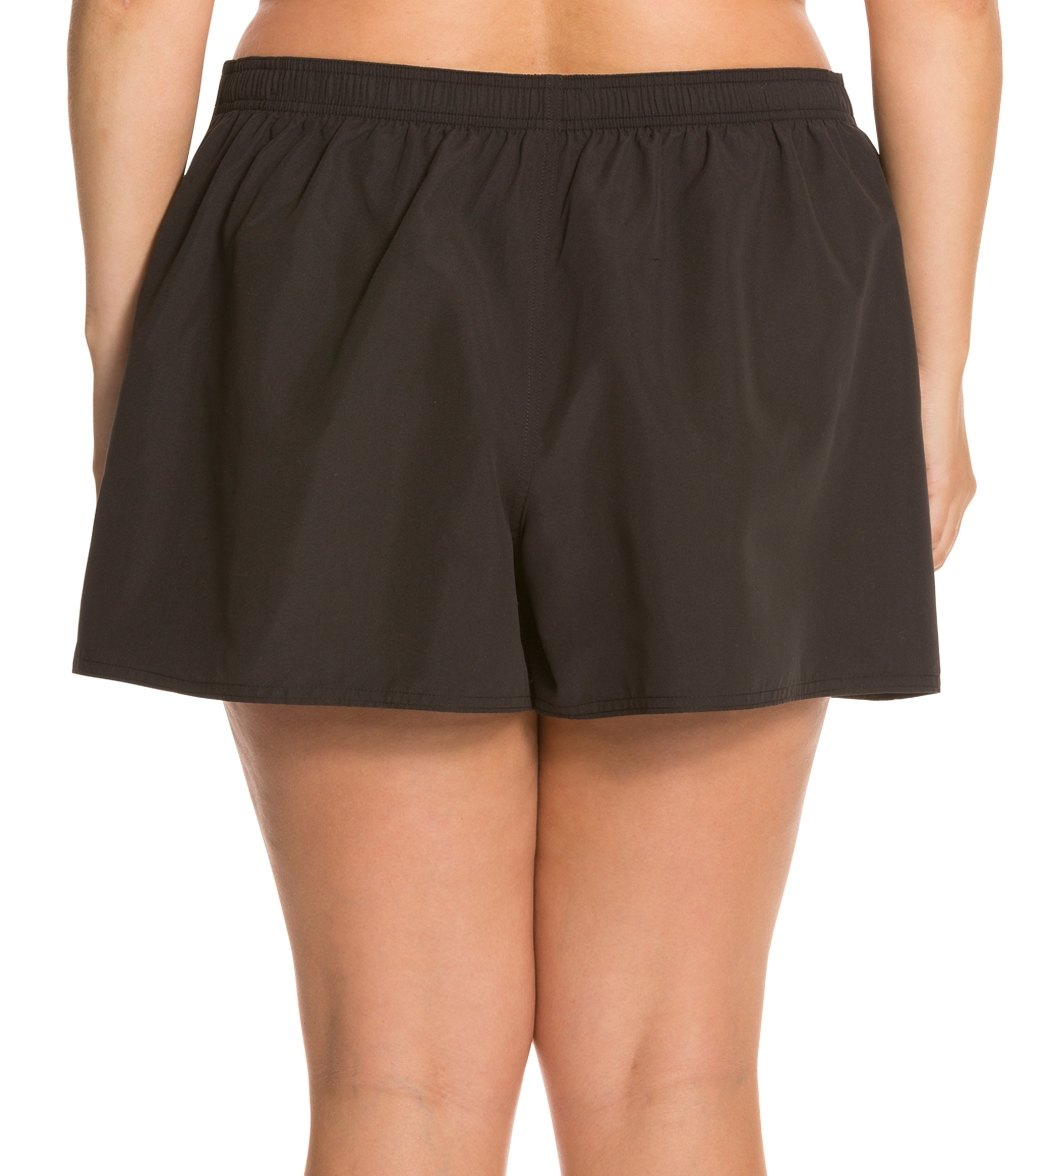 9deb82a5aaa Maxine Women s Plus Size Solid Woven Boardshort at SwimOutlet.com